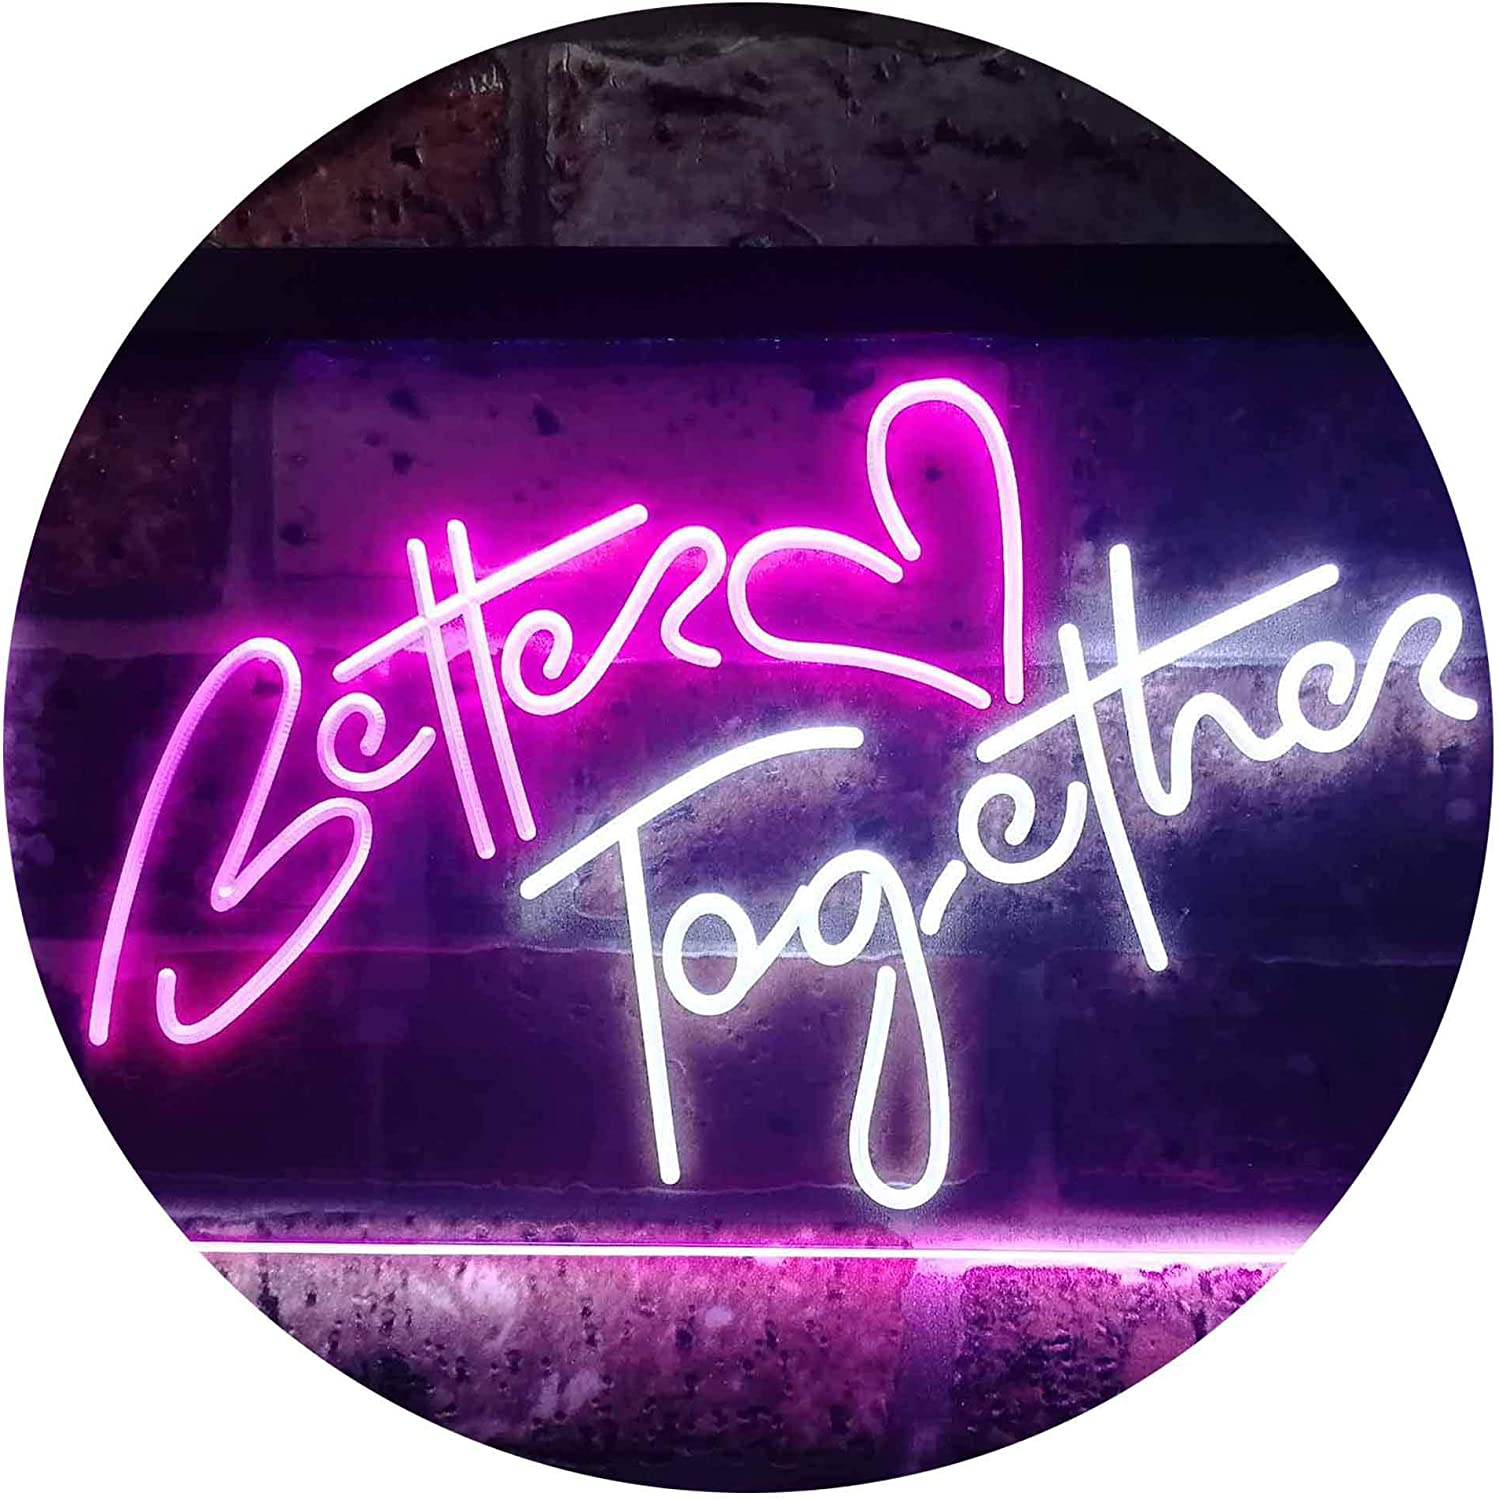 ADV PRO Better Together Bedroom Home D/écor Dual Color LED Barlicht Neonlicht Lichtwerbung Neon Sign Blau /& Gelb 300 x 210mm st6s32-i3235-by